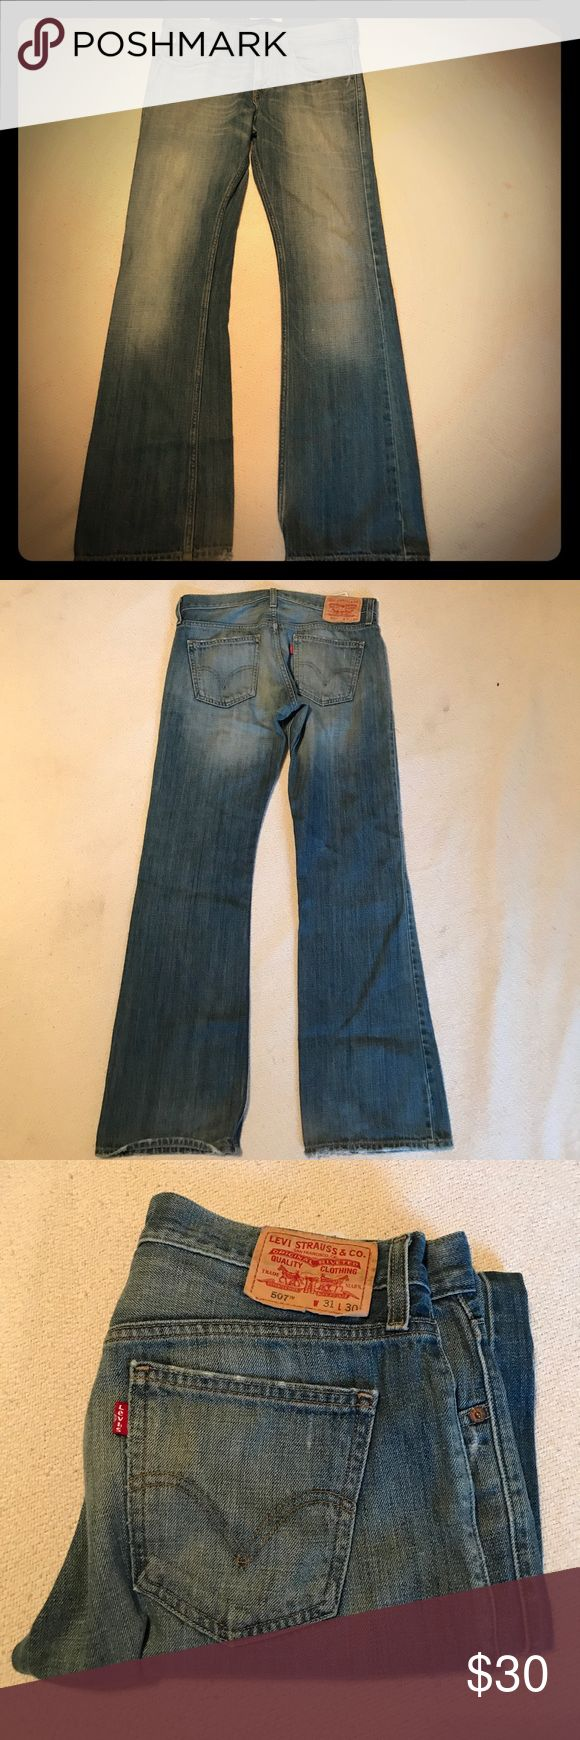 Levi's 507 boot cut slim vintage jeans see pics Cool fades and so comfy size 31 x 30 Levi's slim boot cut vintage denim jeans we ship fast www.selvedgeseitz.com Levi's Jeans Bootcut